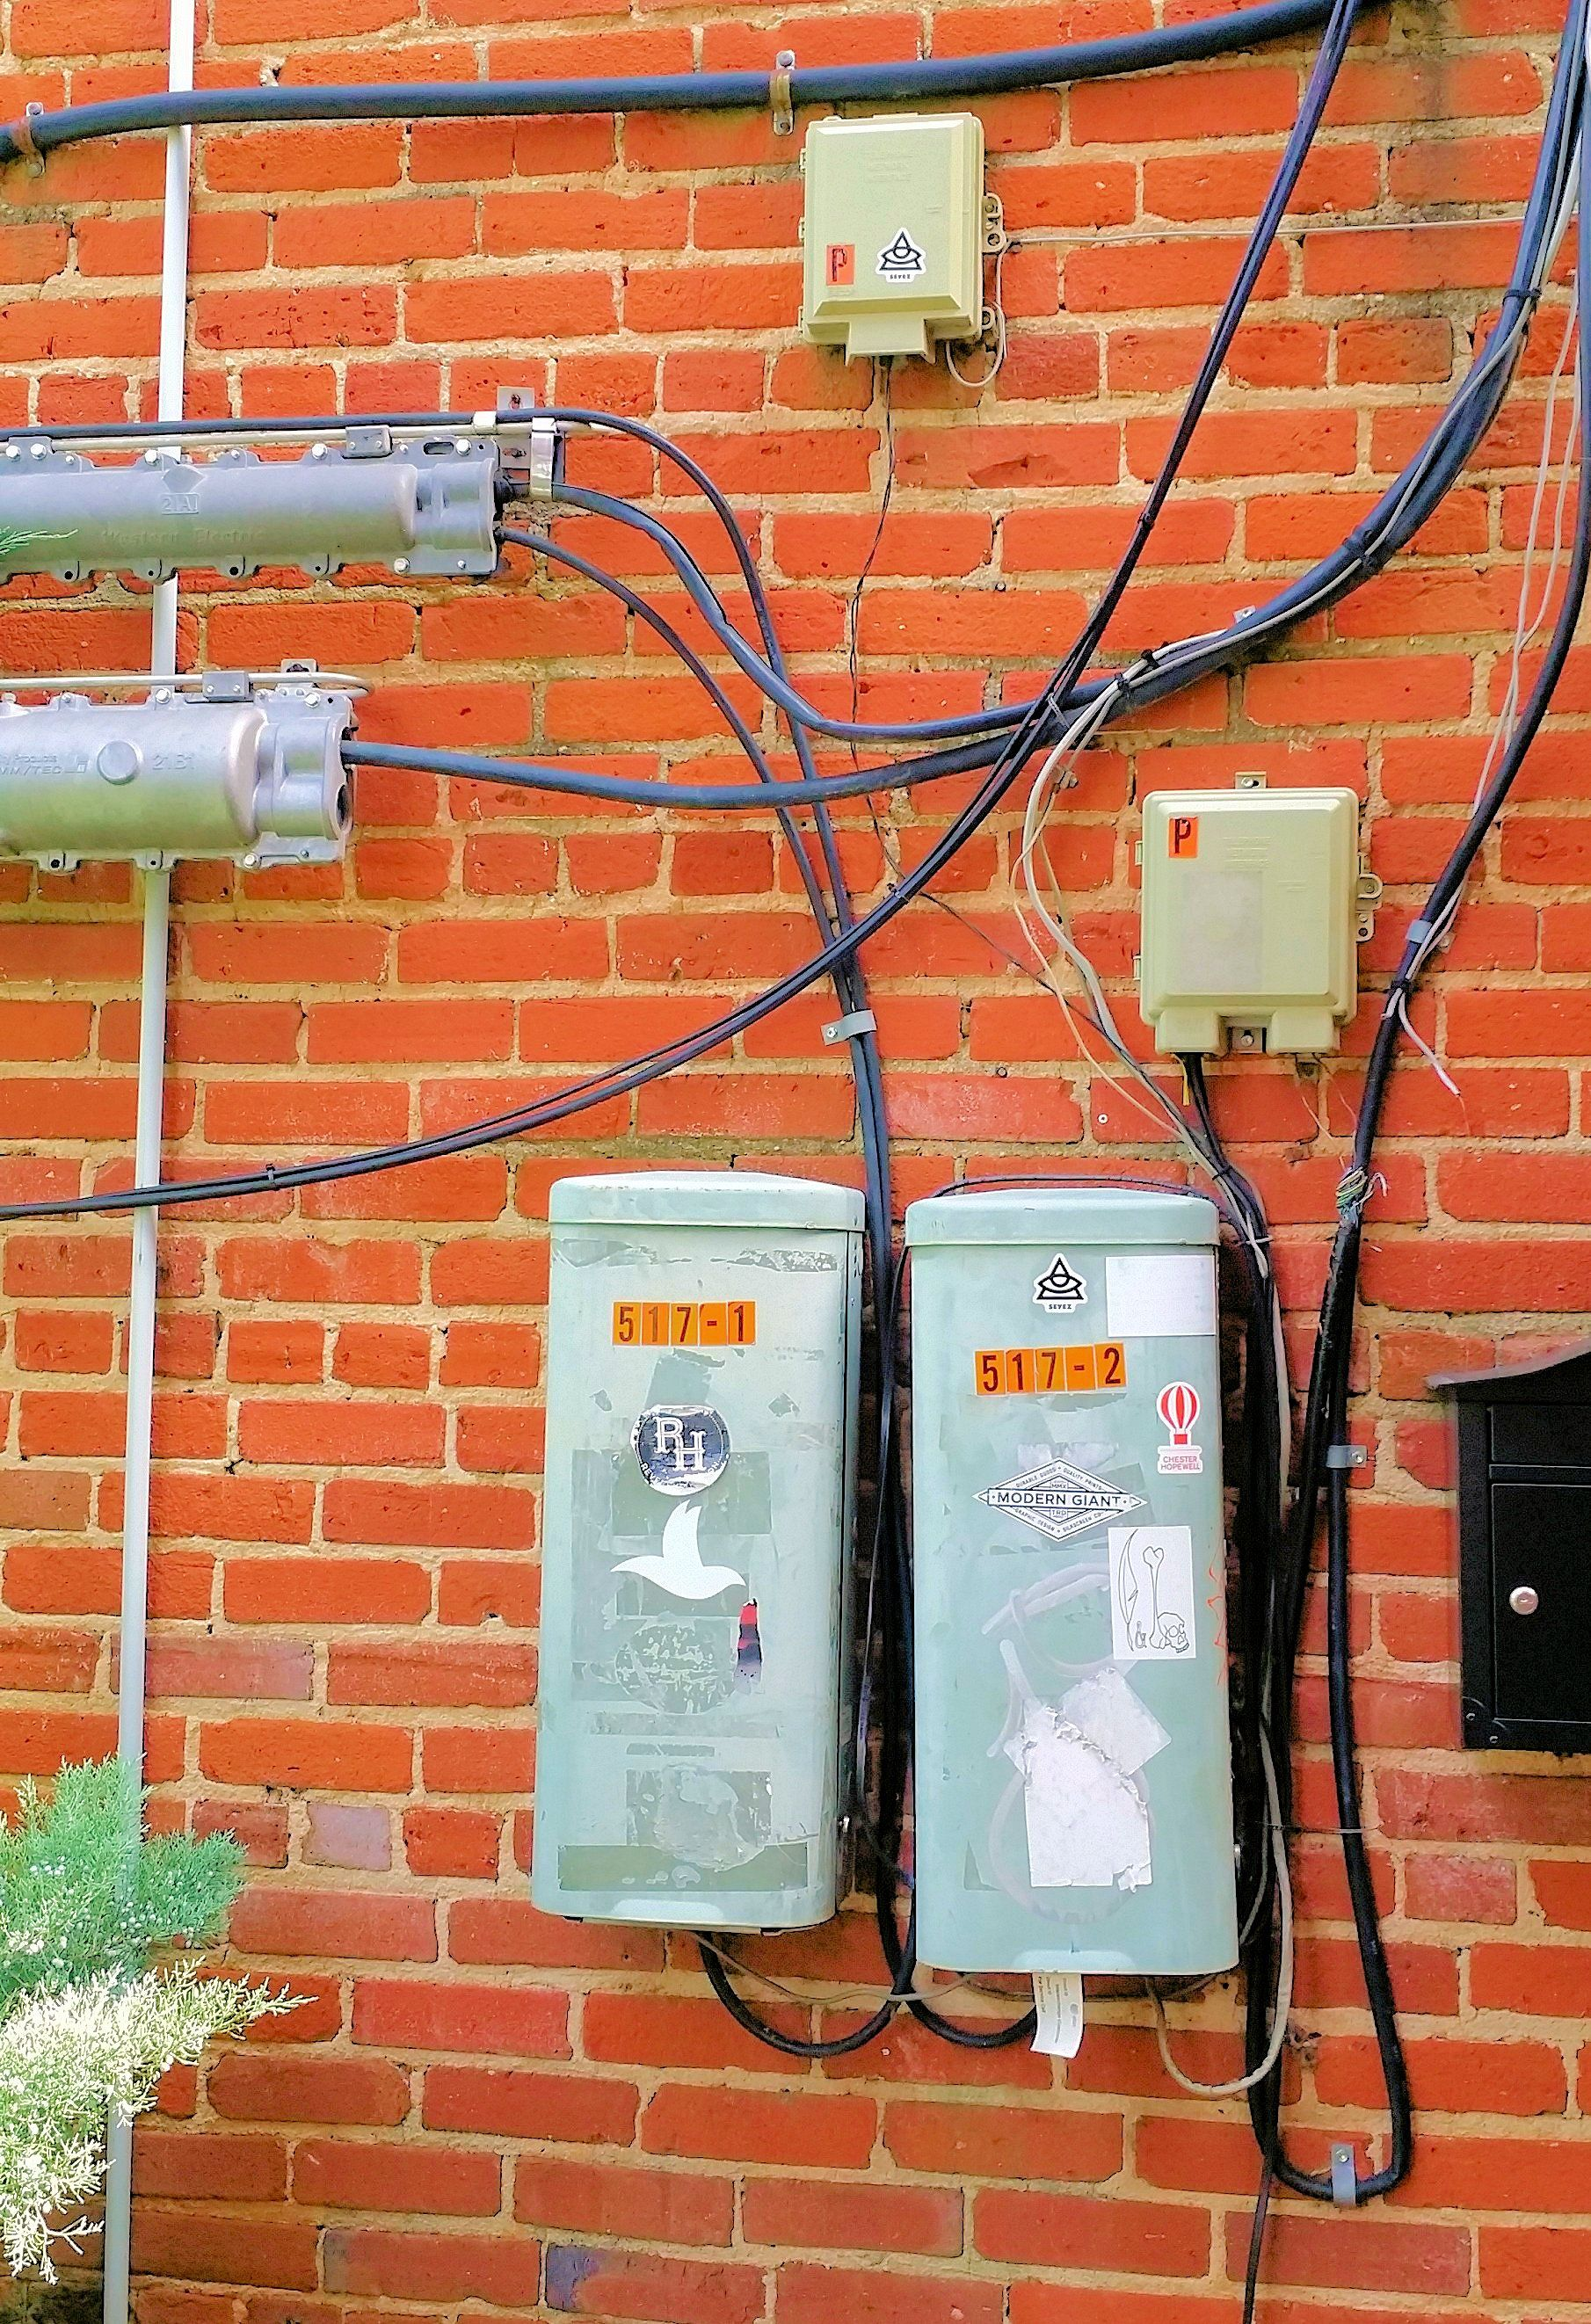 medium resolution of cable terminals splice cases outside network interfaces on side of commercial building 2015